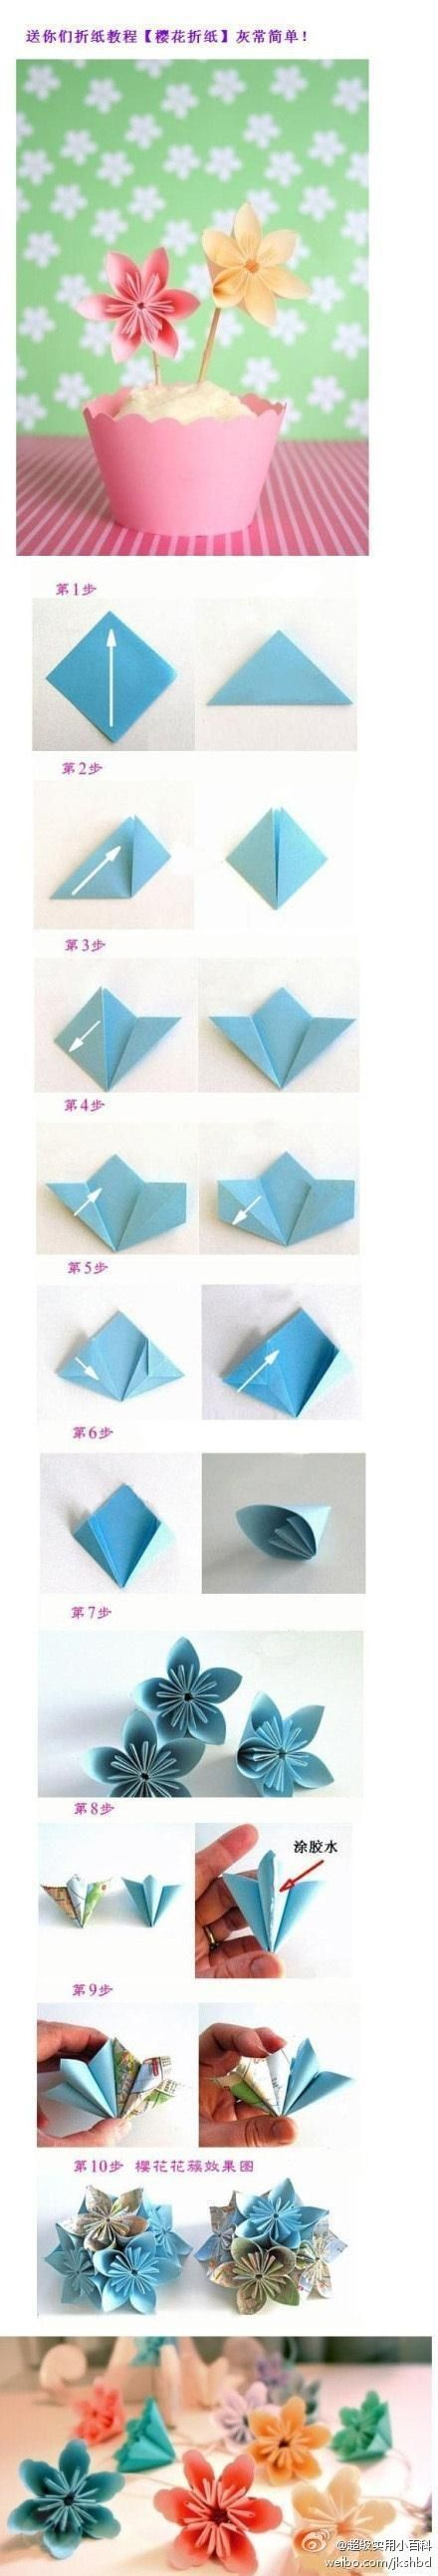 Origami Flower Step By Step Flower Pinterest Origami Flowers